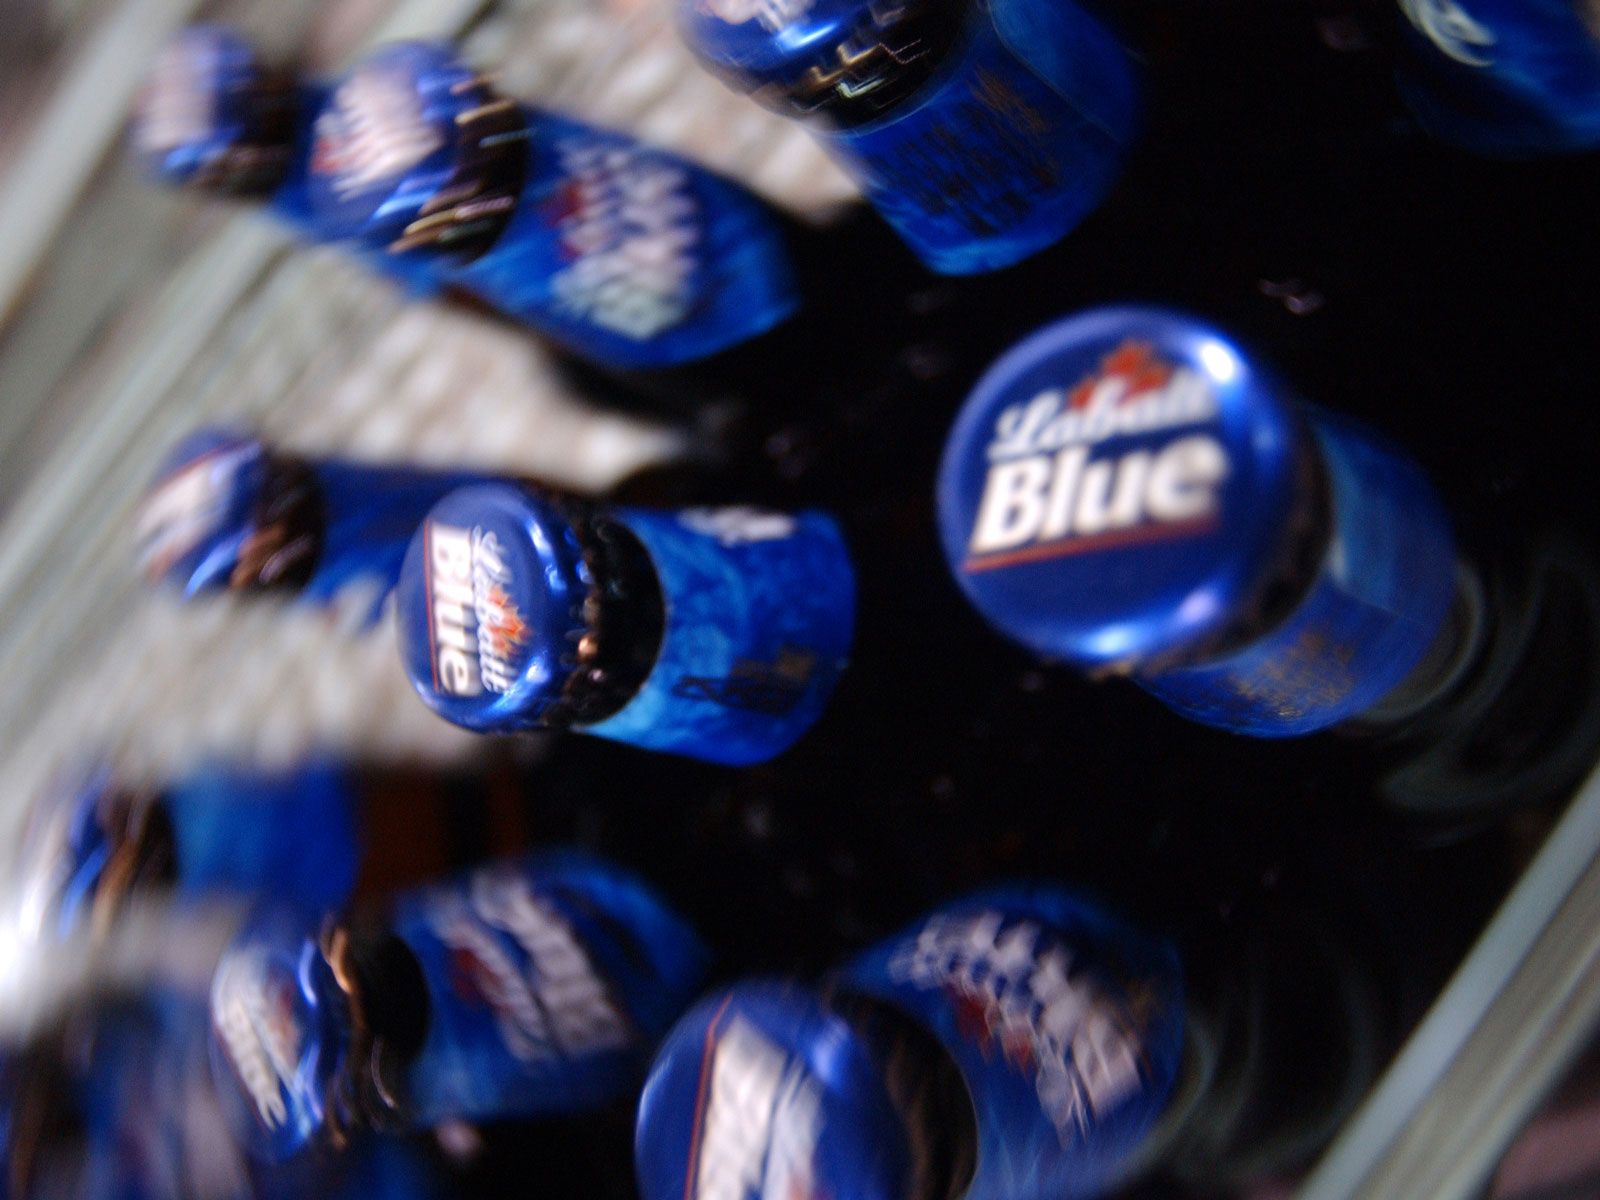 labatt-craft-beer-FT-BLOG1118.jpg